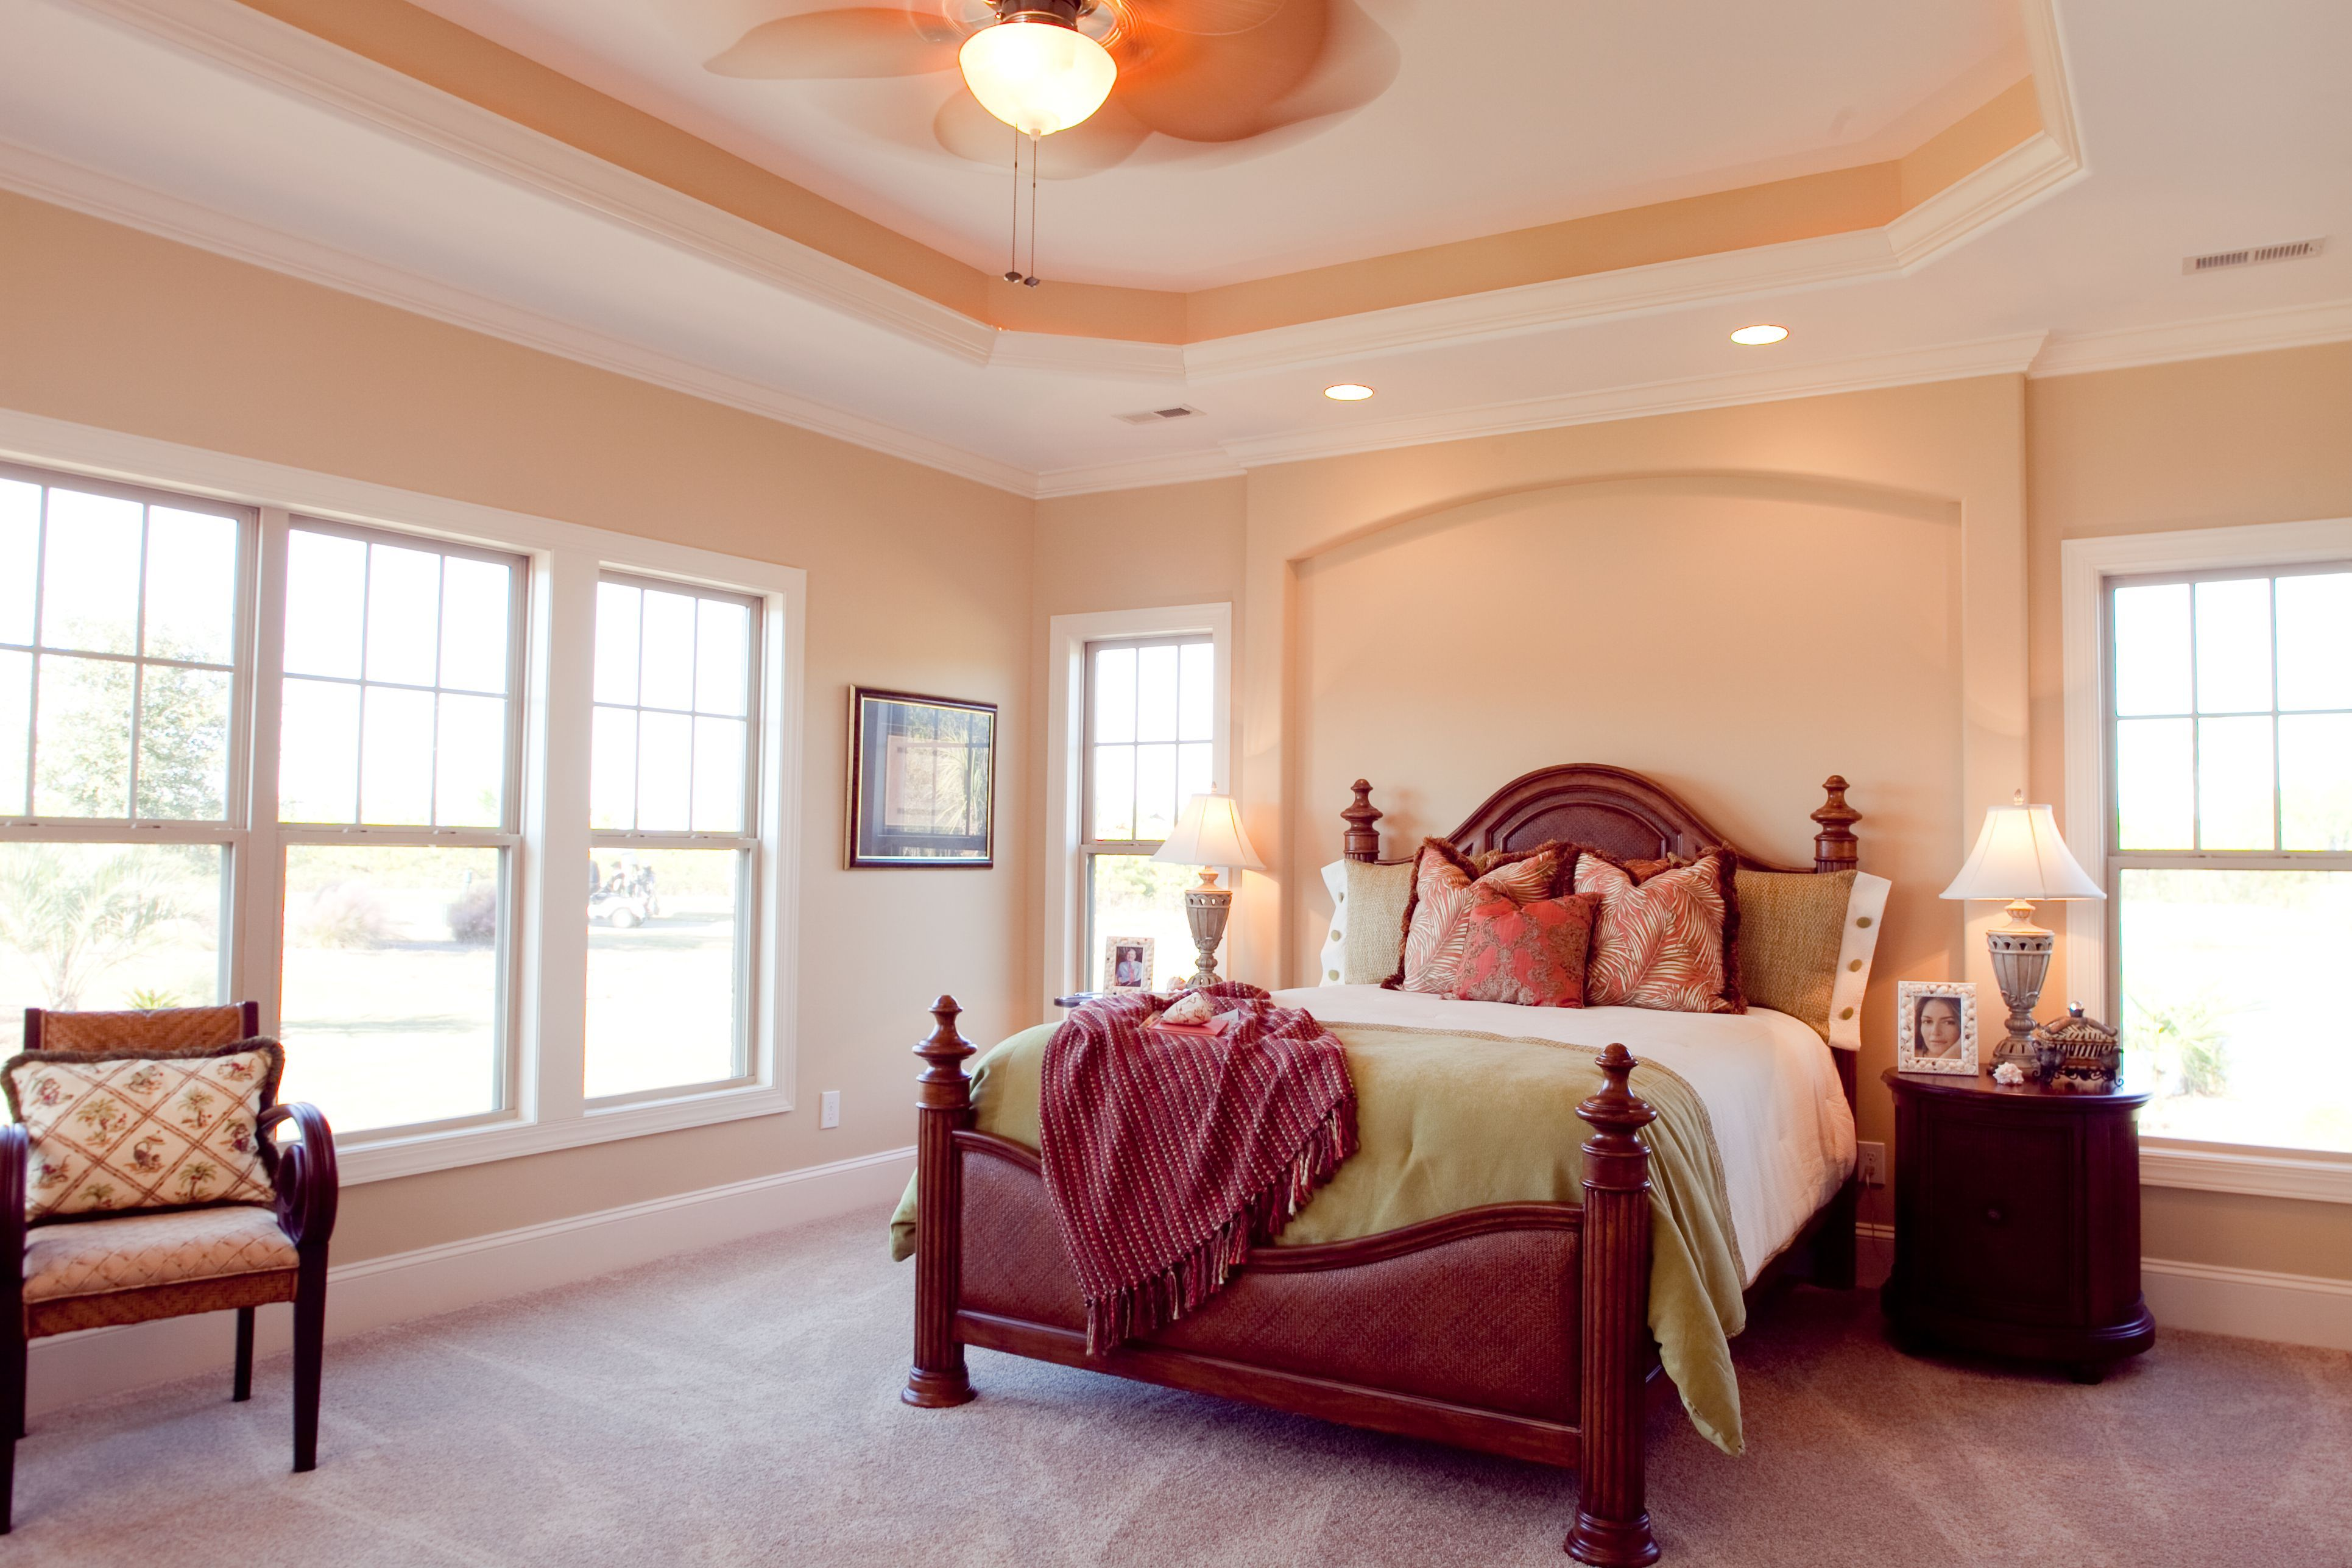 Tray ceiling, recessed lighting, windows everywhere...what